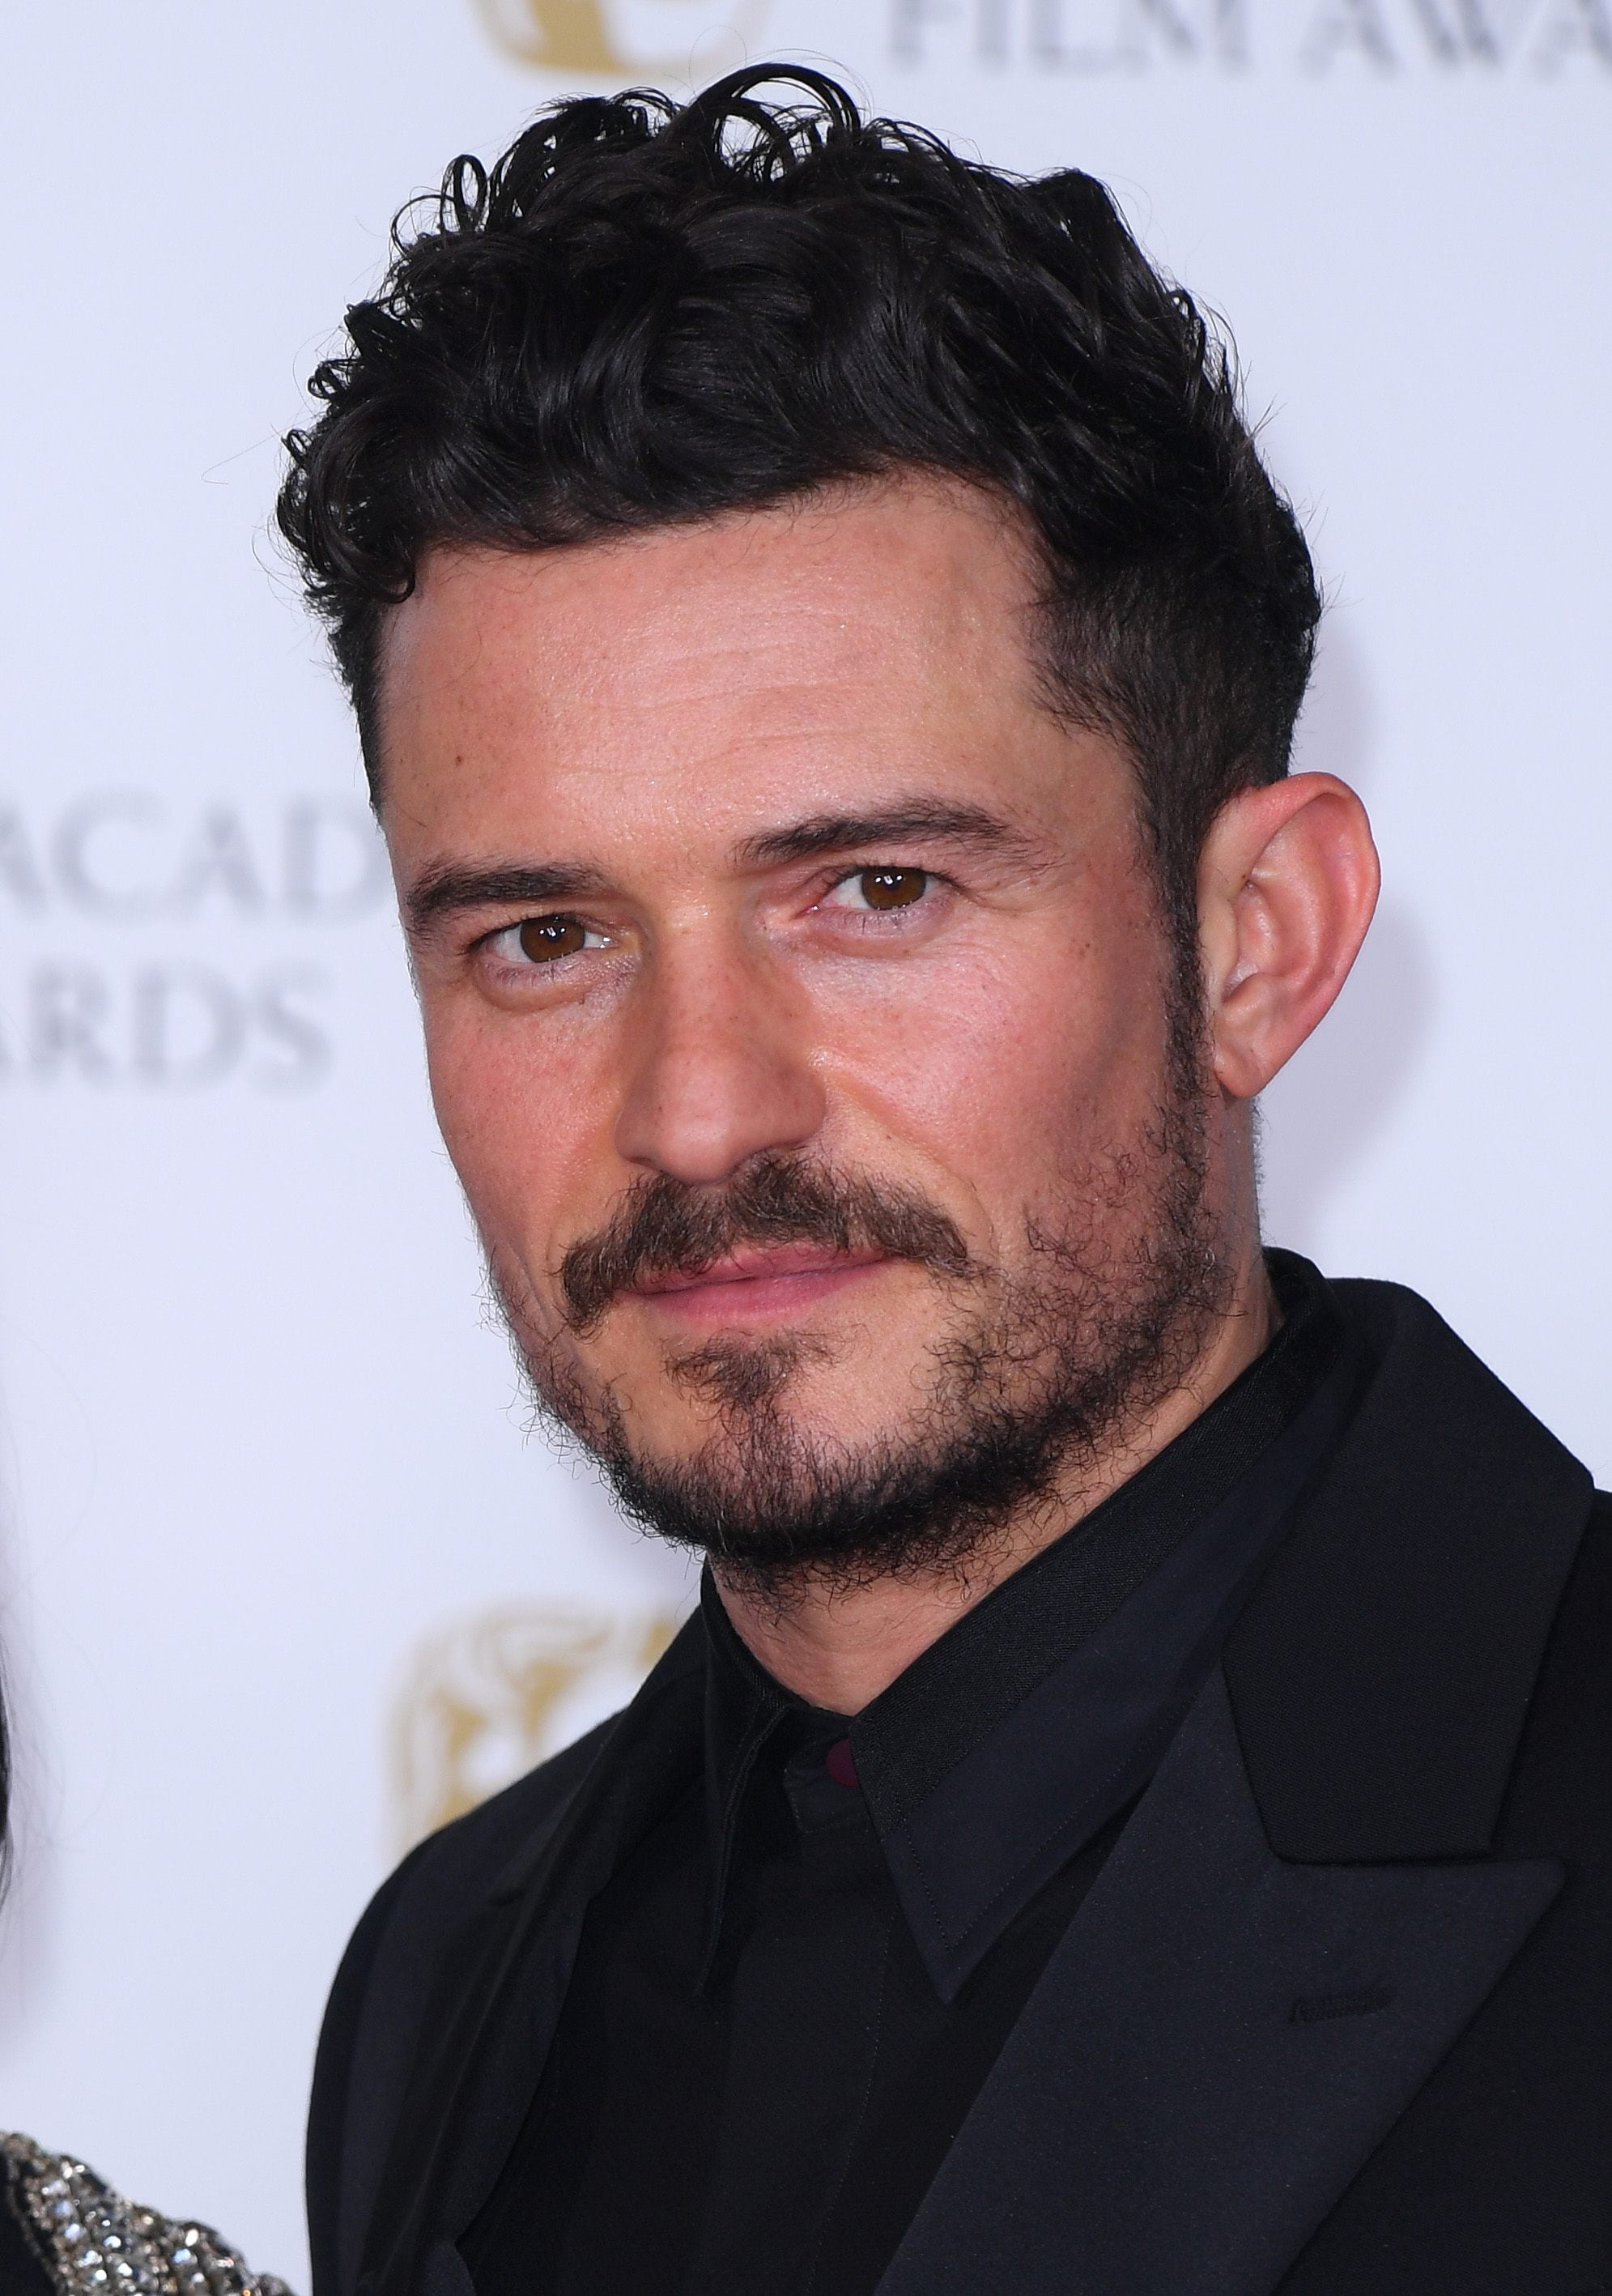 Hairstyles for men over 40: Close-up of Orlando Bloom with curly tousled dark brown short hair